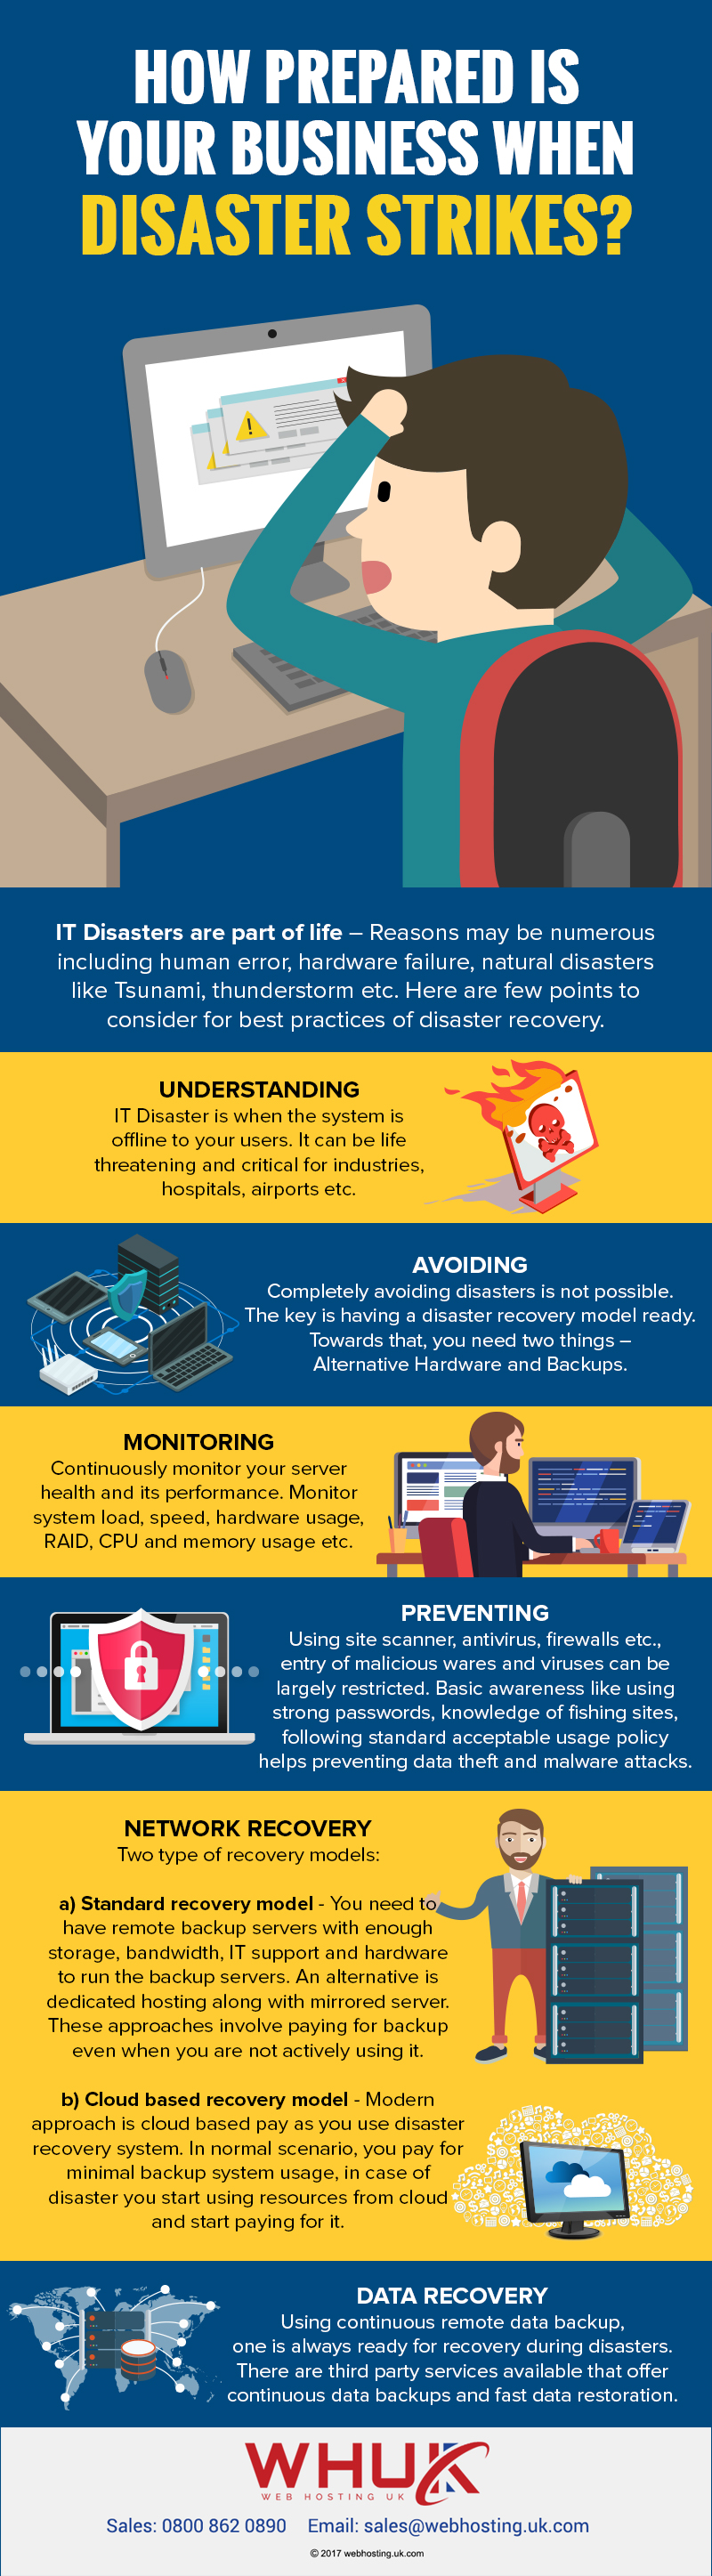 Best Practices of Disaster Recovery